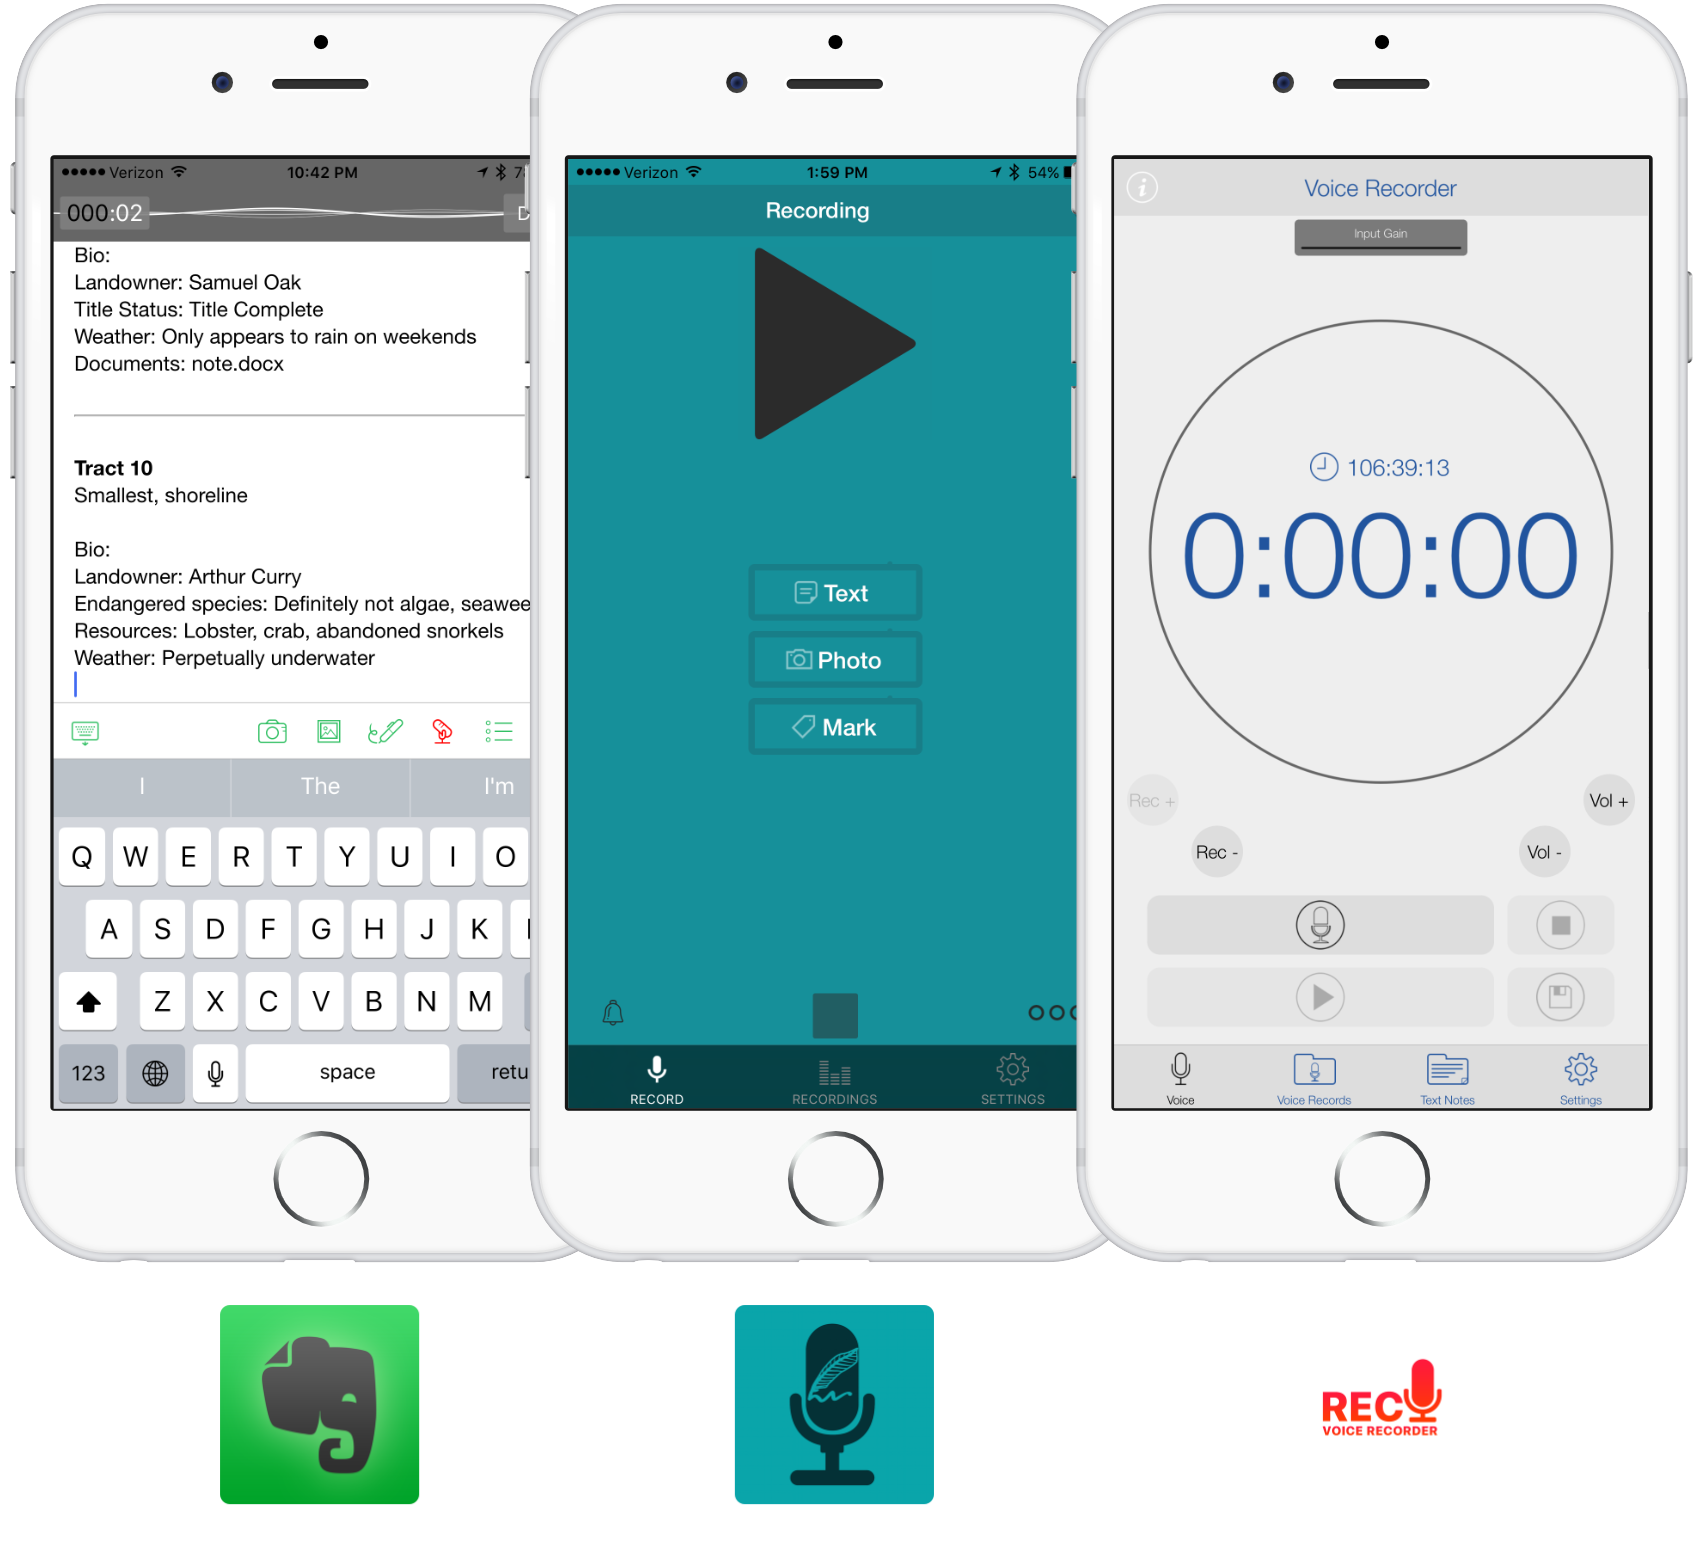 Voice Recorder - Evernote - Smart Recorder